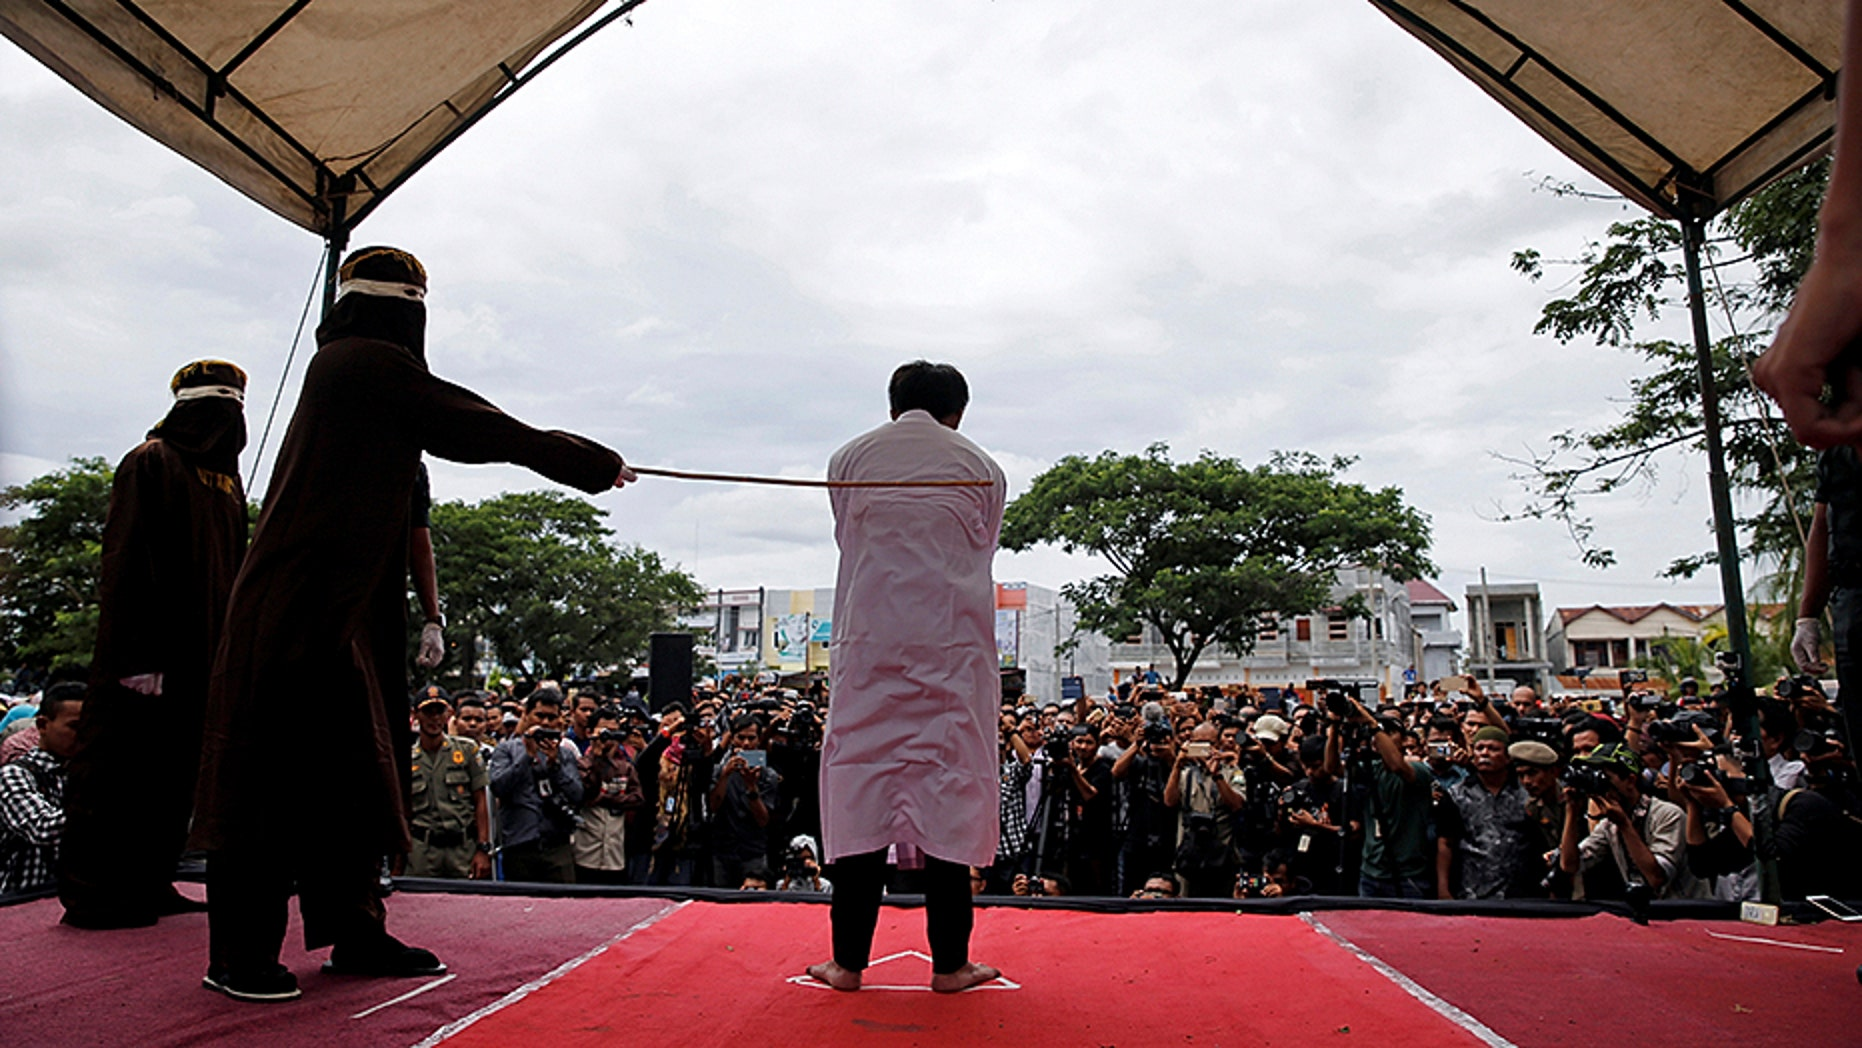 Two Christian Indonesians were caned for gambling, which is against sharia law.